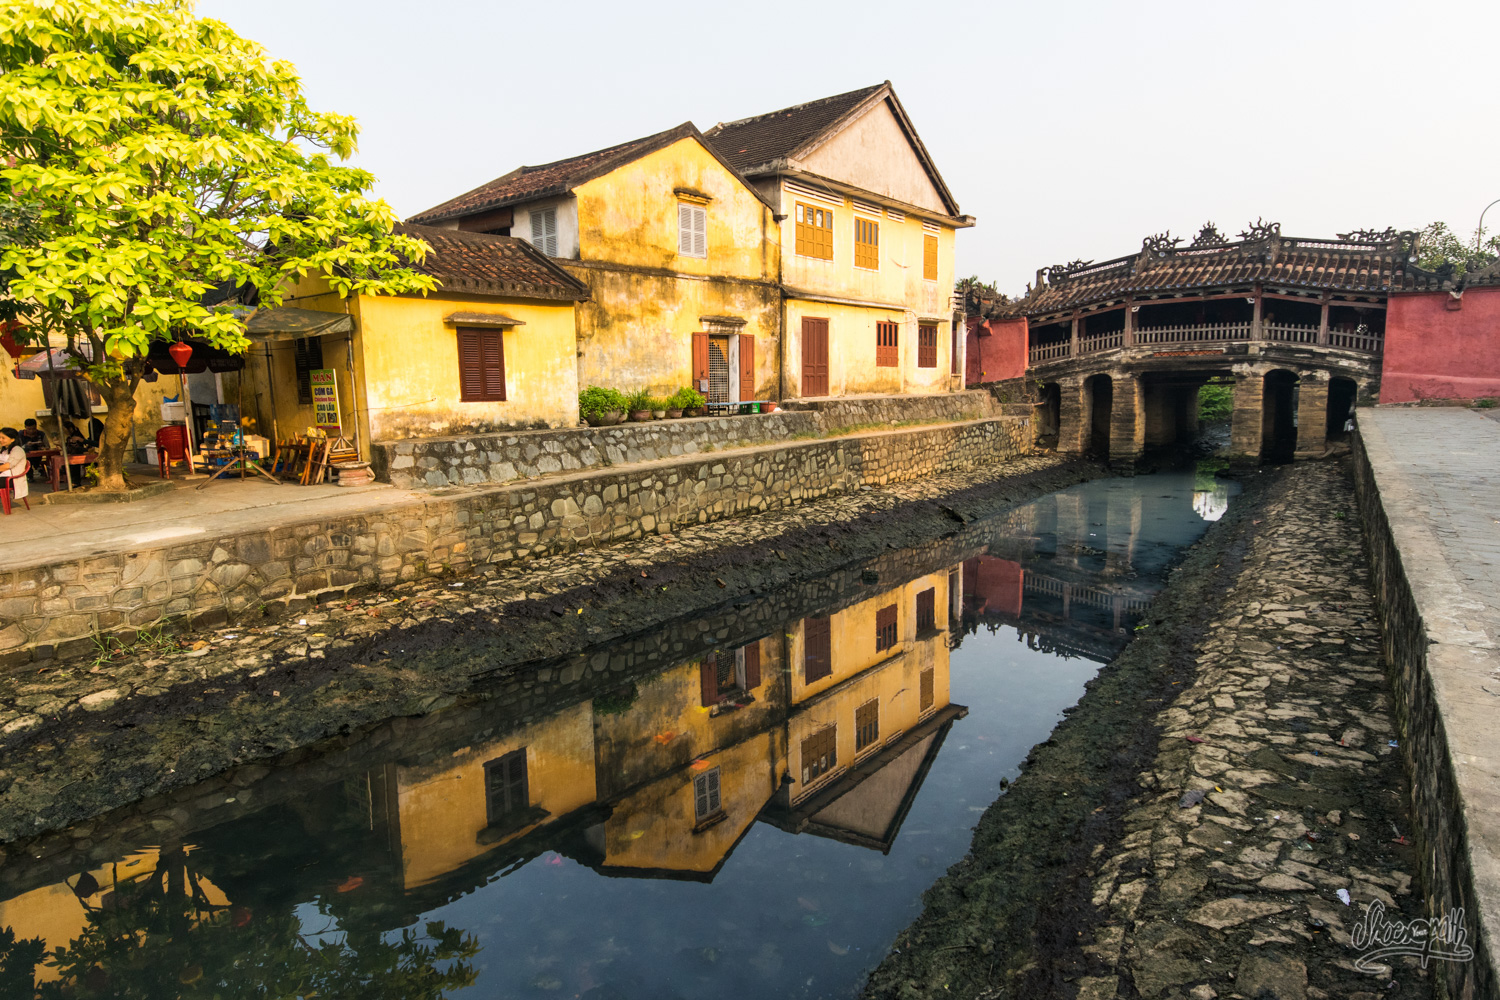 Vietnam – Hoi An, The Yellow City